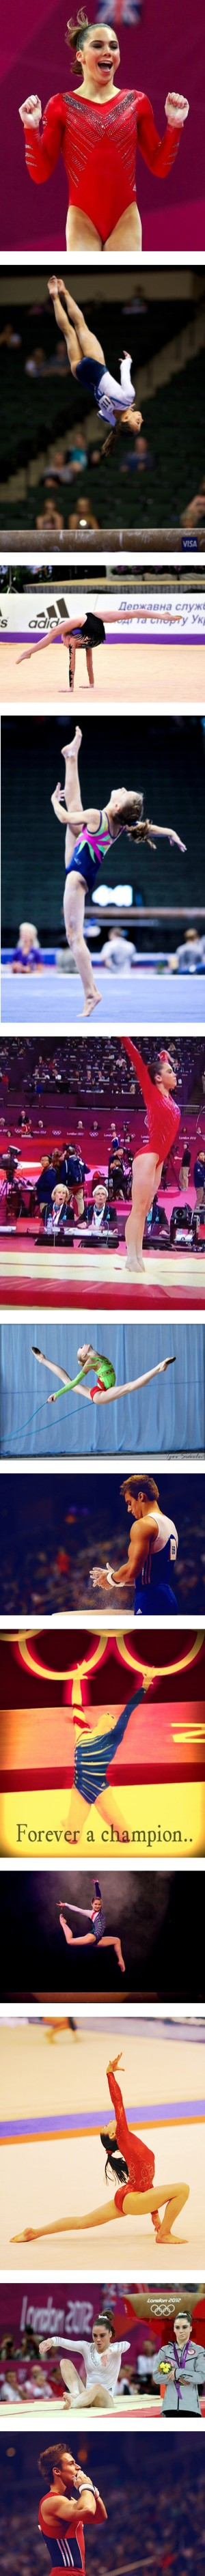 """""""498. gymnastics pictures ;; part 3"""" by dazzleme ❤ liked on Polyvore"""